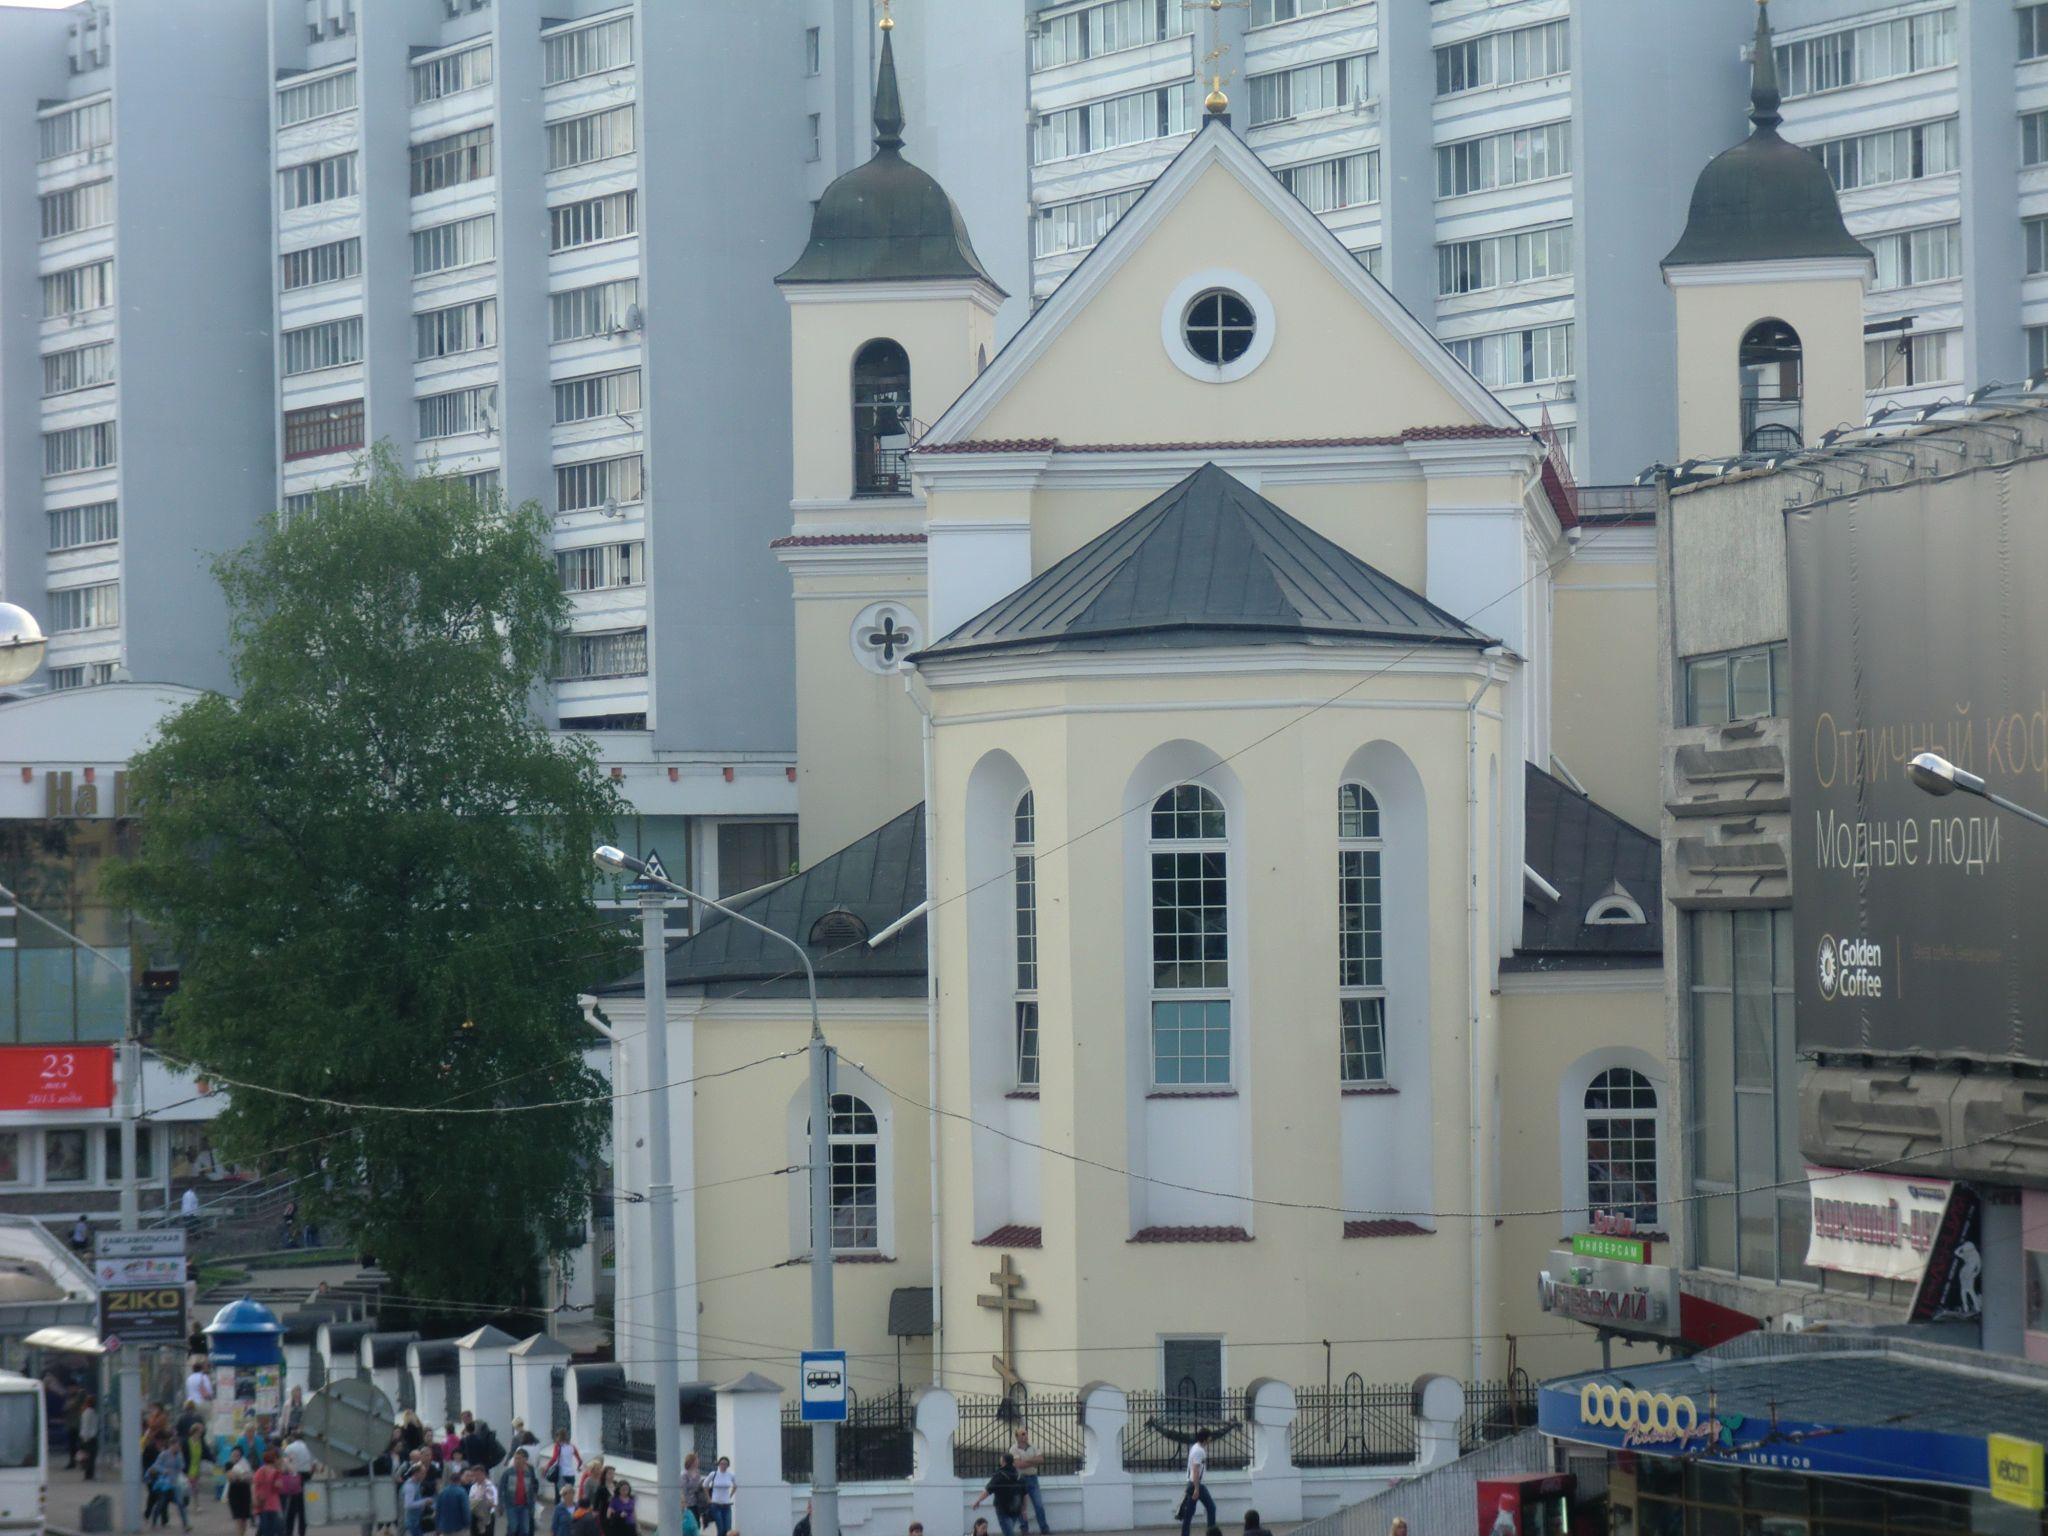 Minsk old town 18 - Minsk, 1 amazing city you have to see